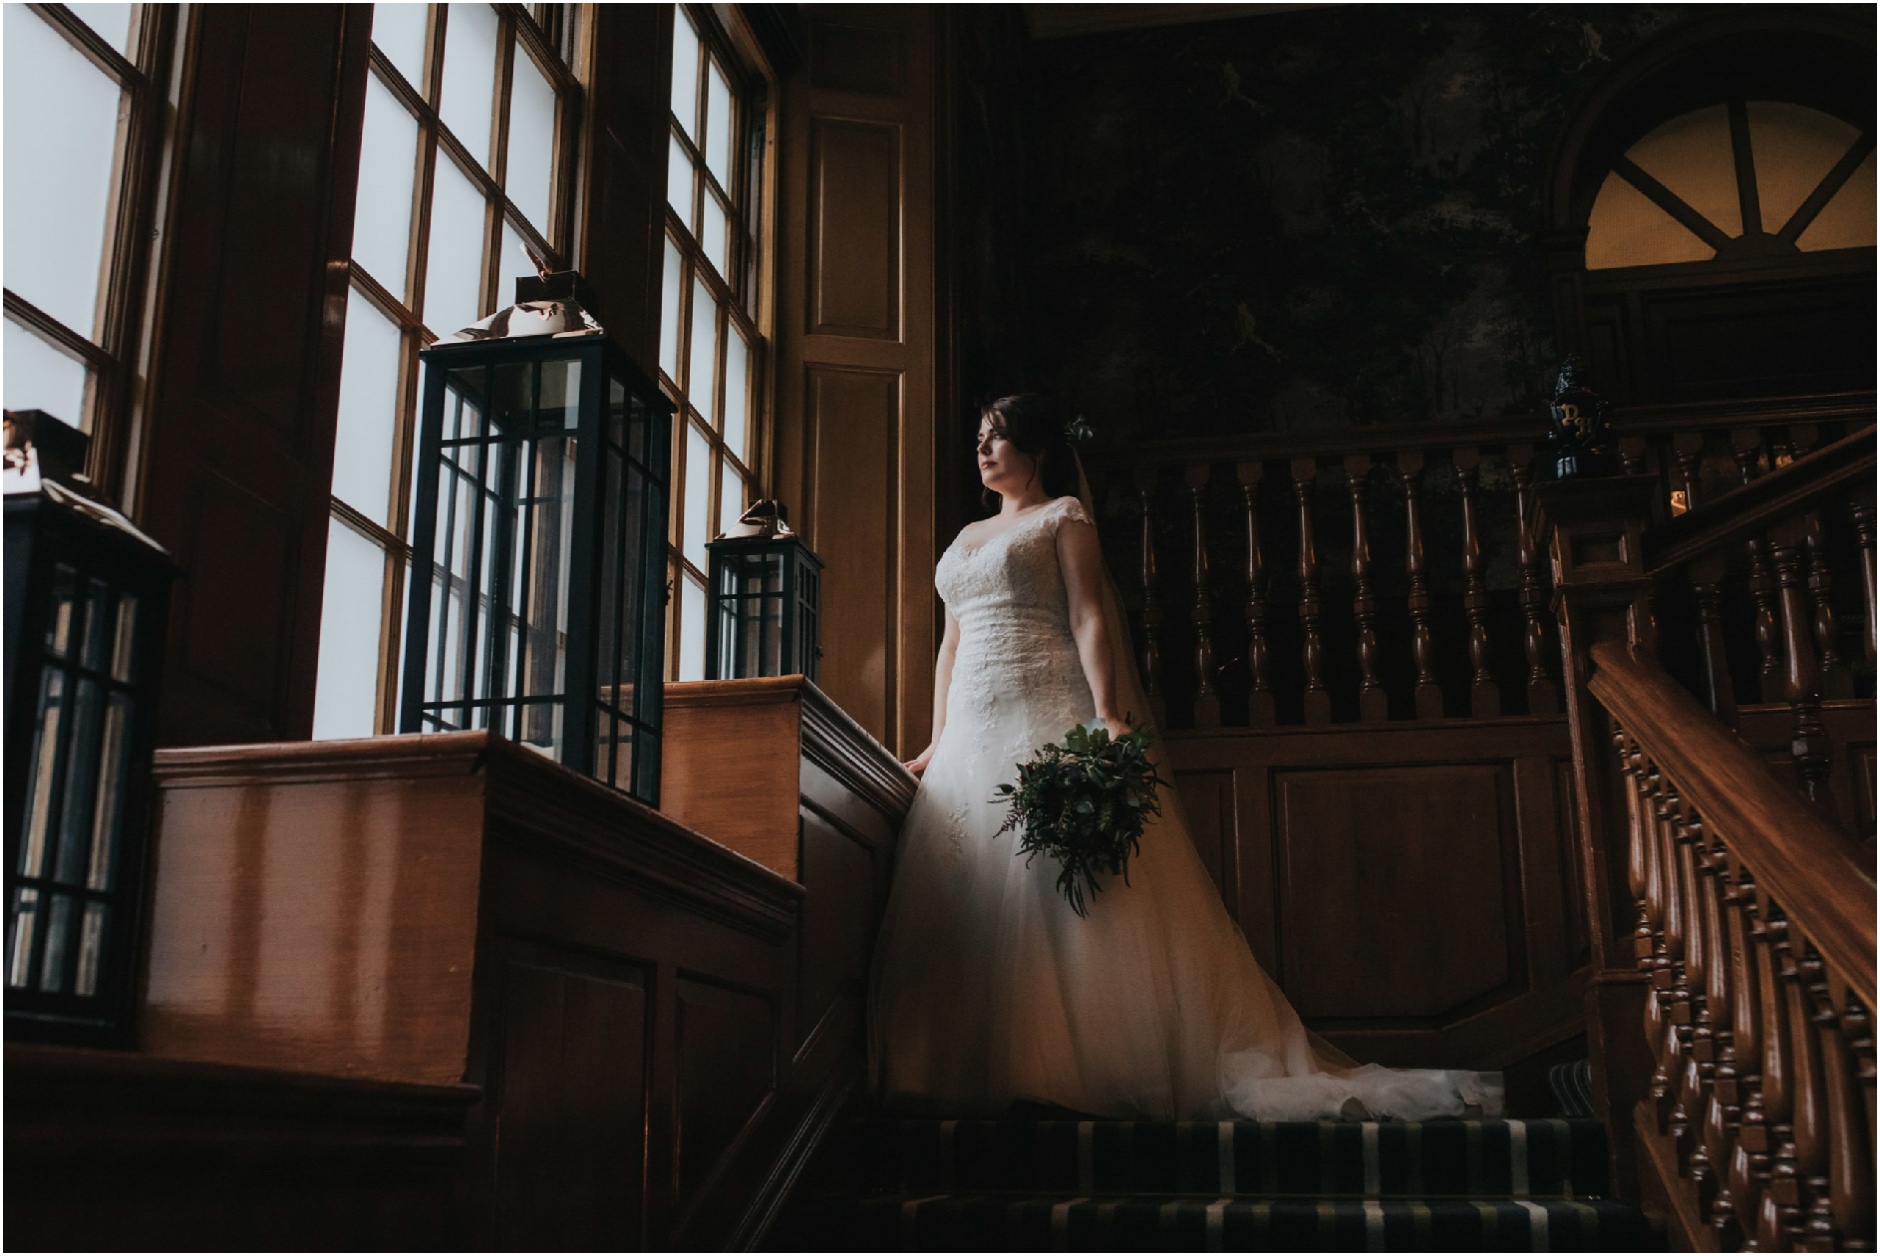 bridal portrait on the stairwell at dunkeld house hotel, pitlochry